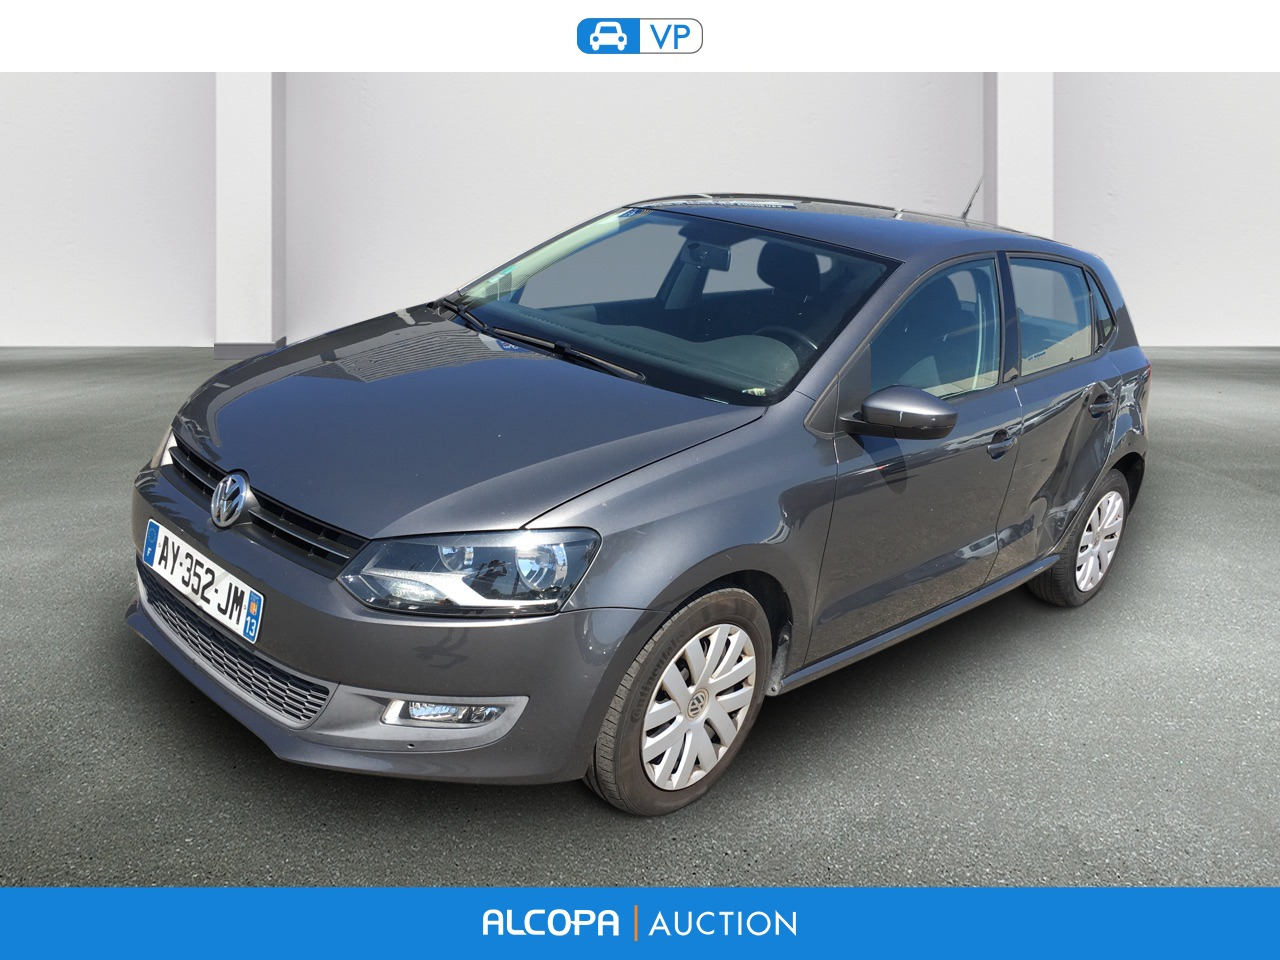 volkswagen polo 06 2009 04 2014 polo 1 6 tdi 90 cr fap confortline alcopa auction. Black Bedroom Furniture Sets. Home Design Ideas